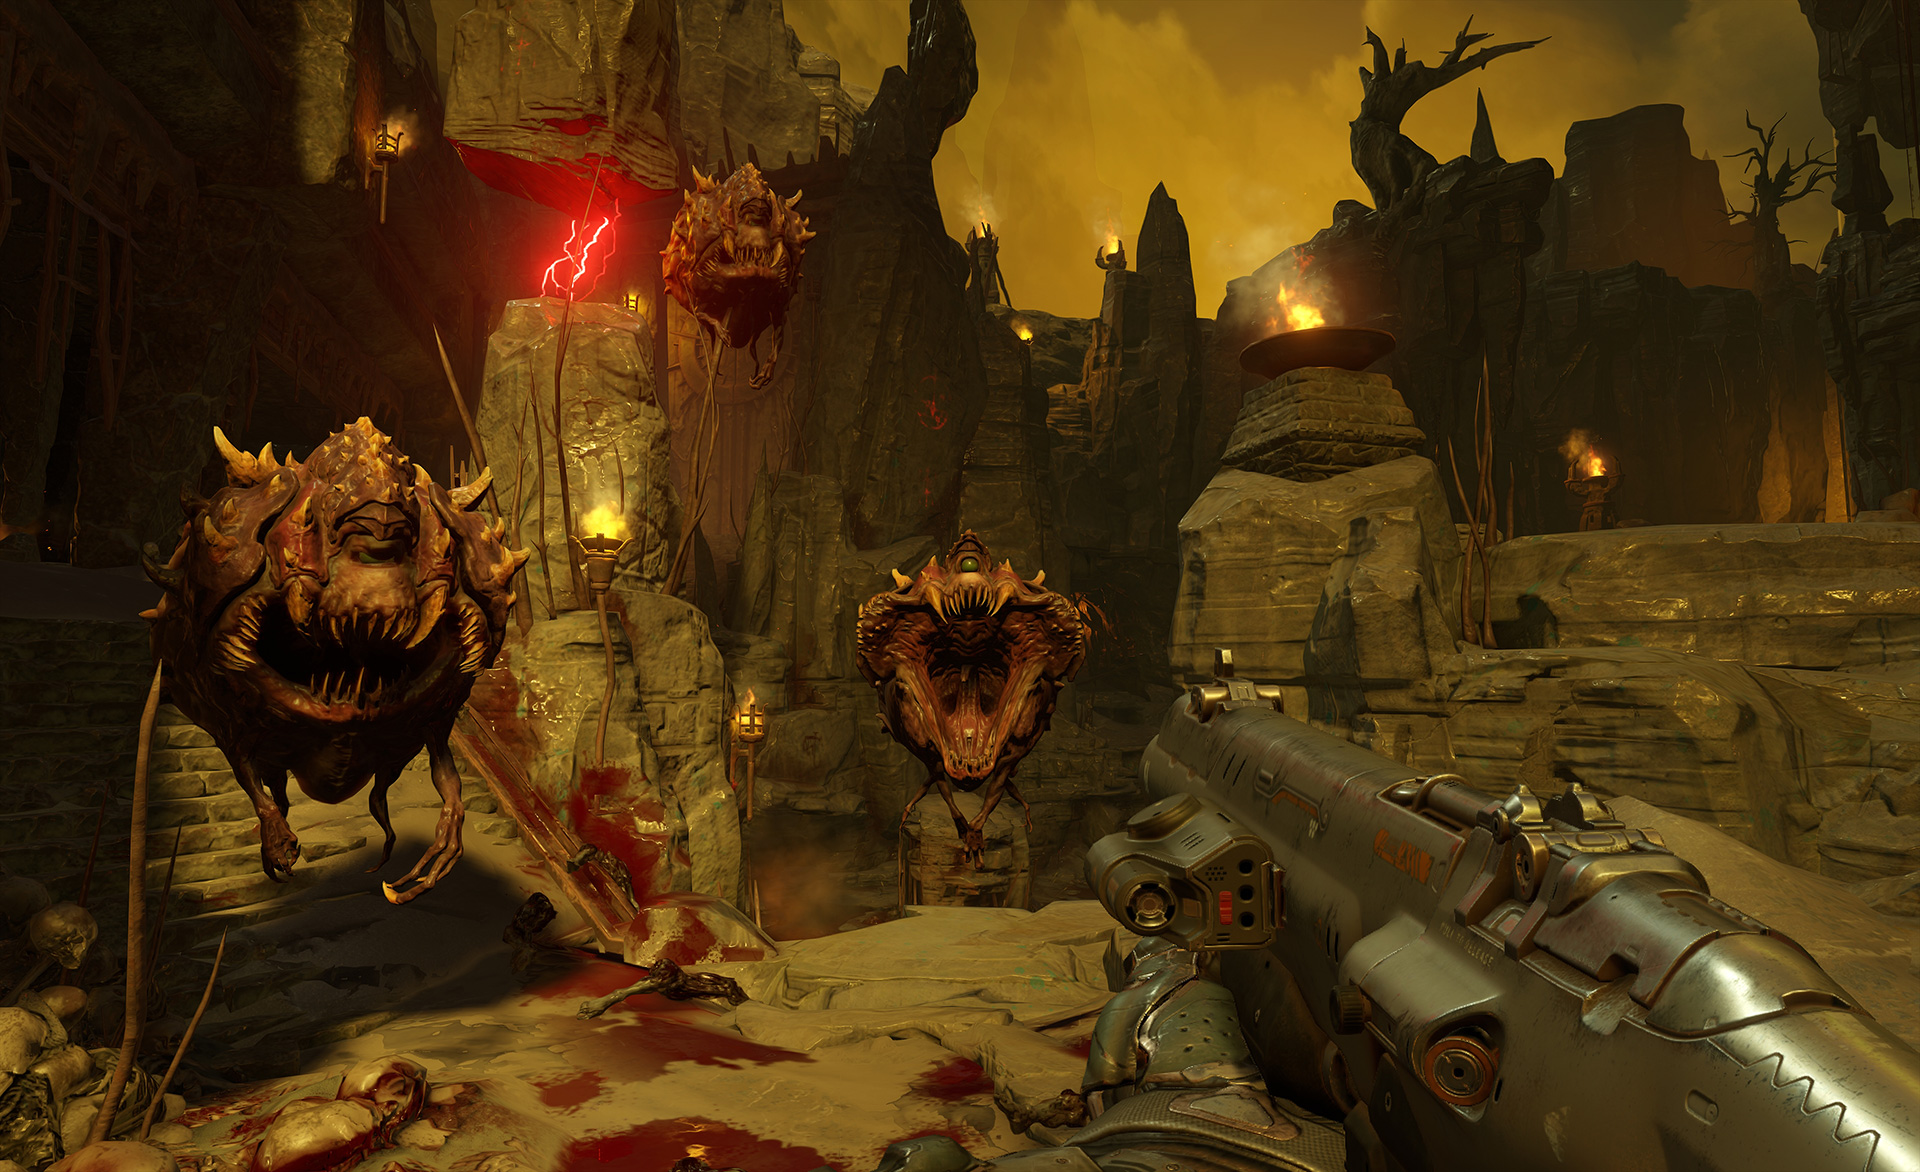 doom-cacodemons-screenshot_1920.0